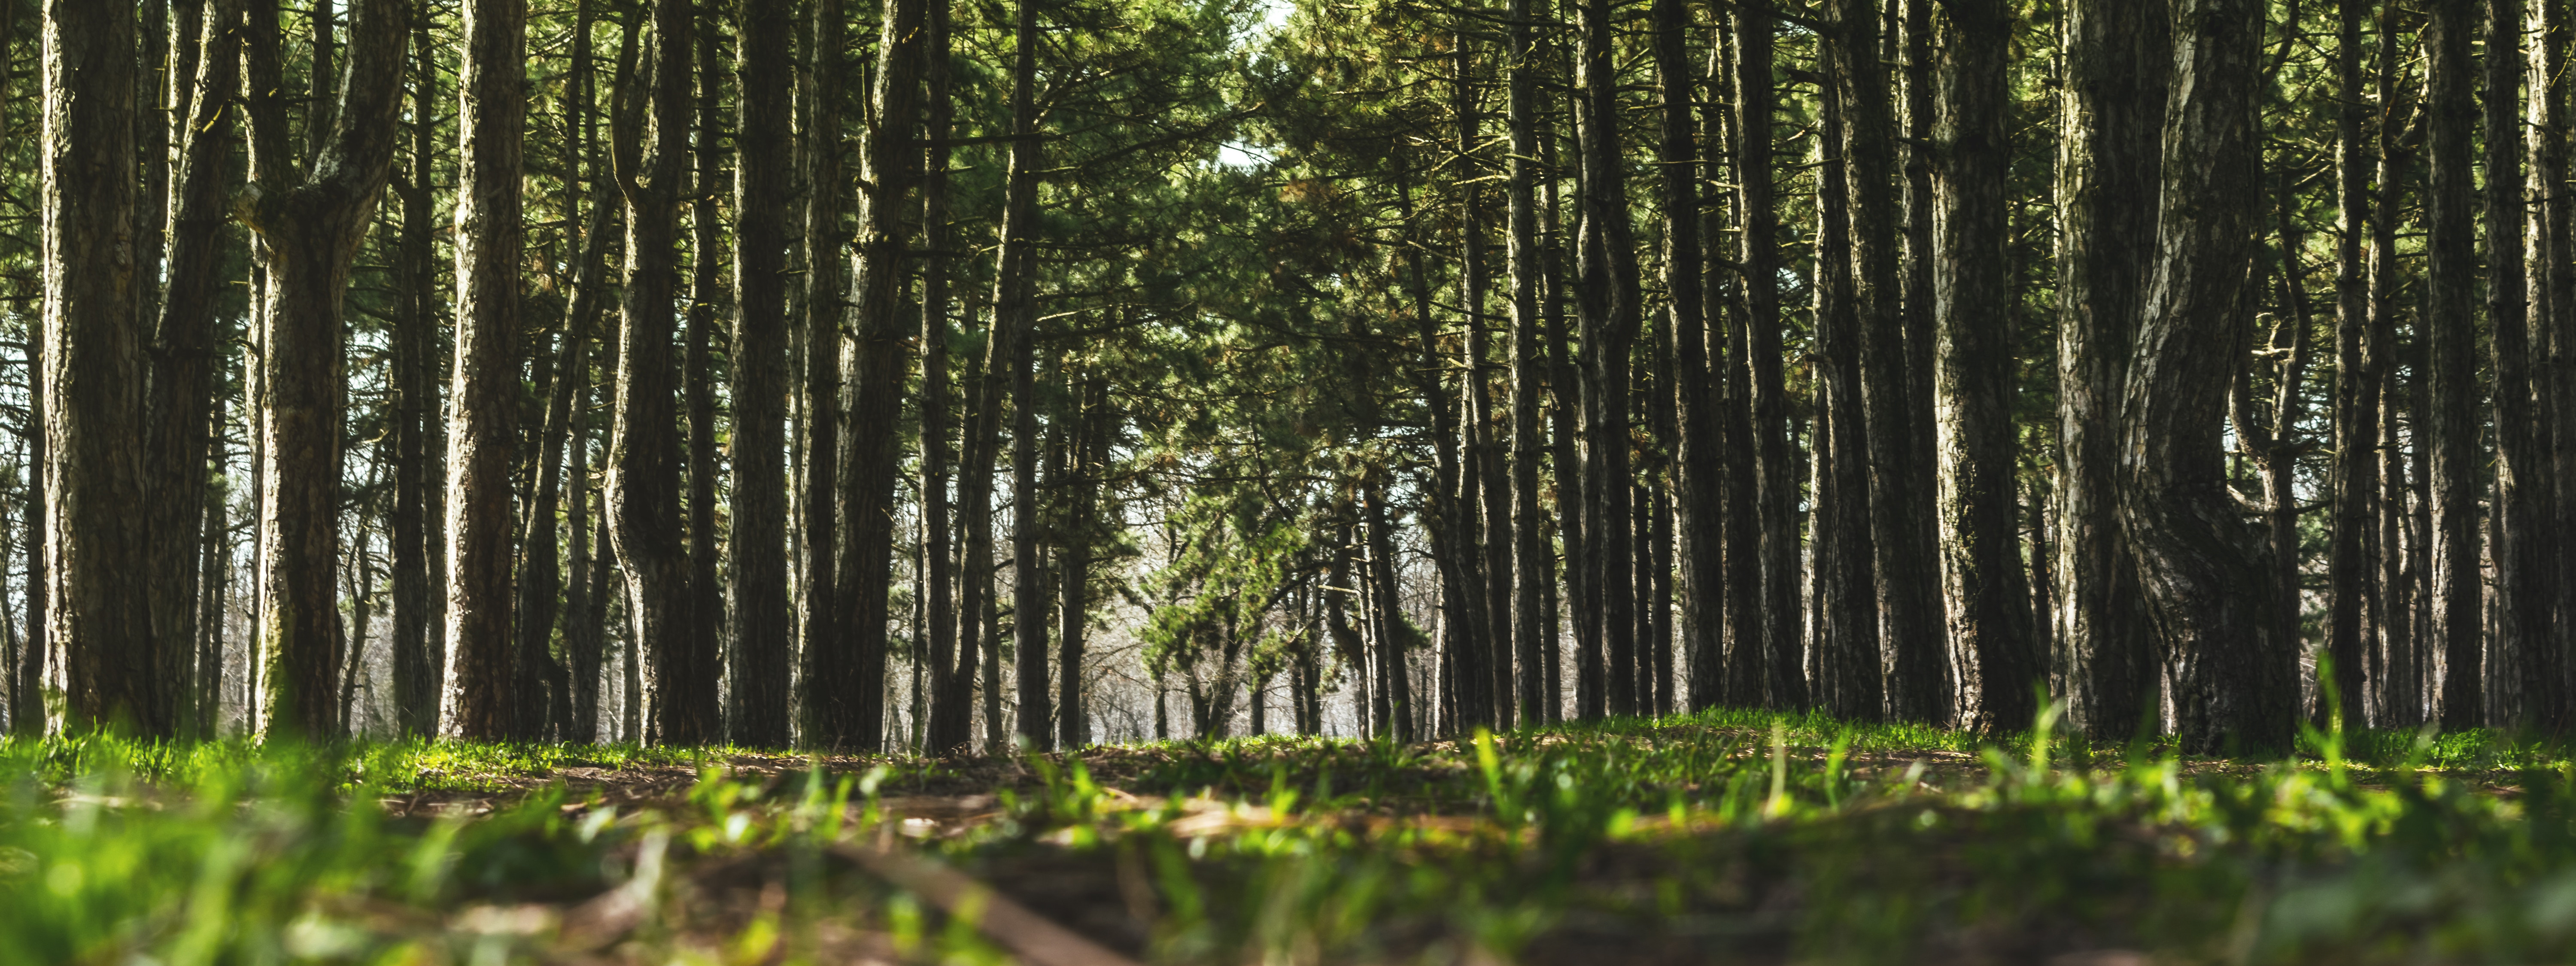 Is forest-biomass electricity carbon neutral?